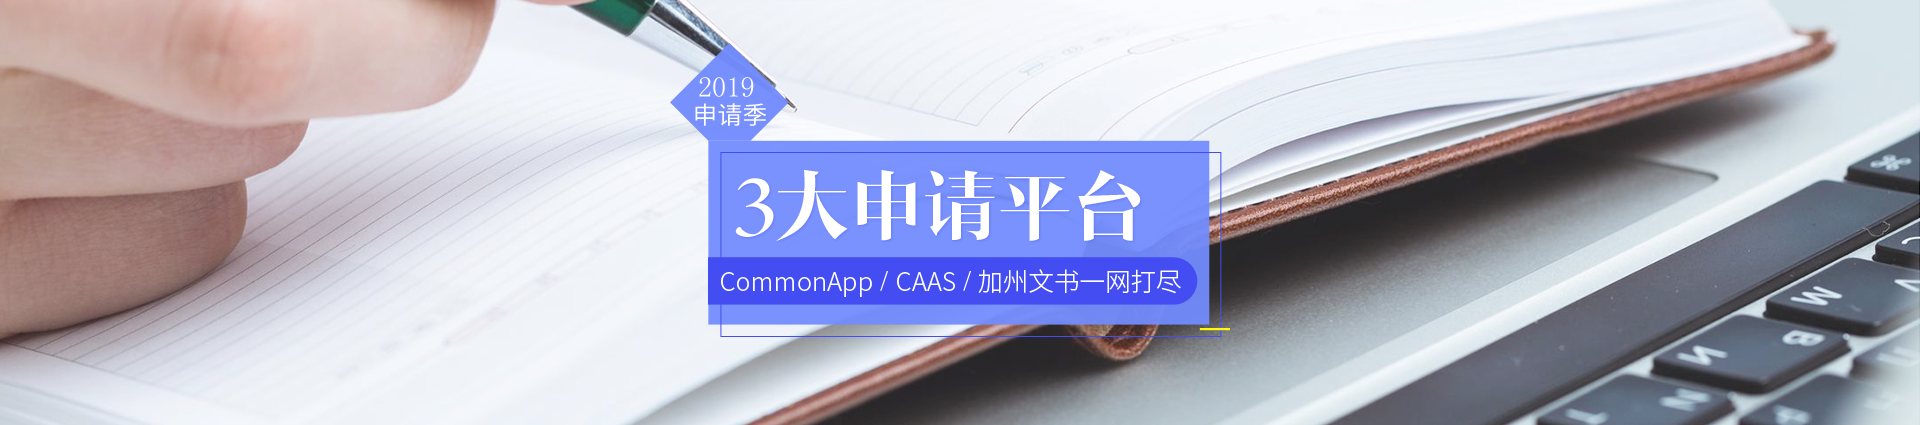 CommonApp/CAAS/加州文书